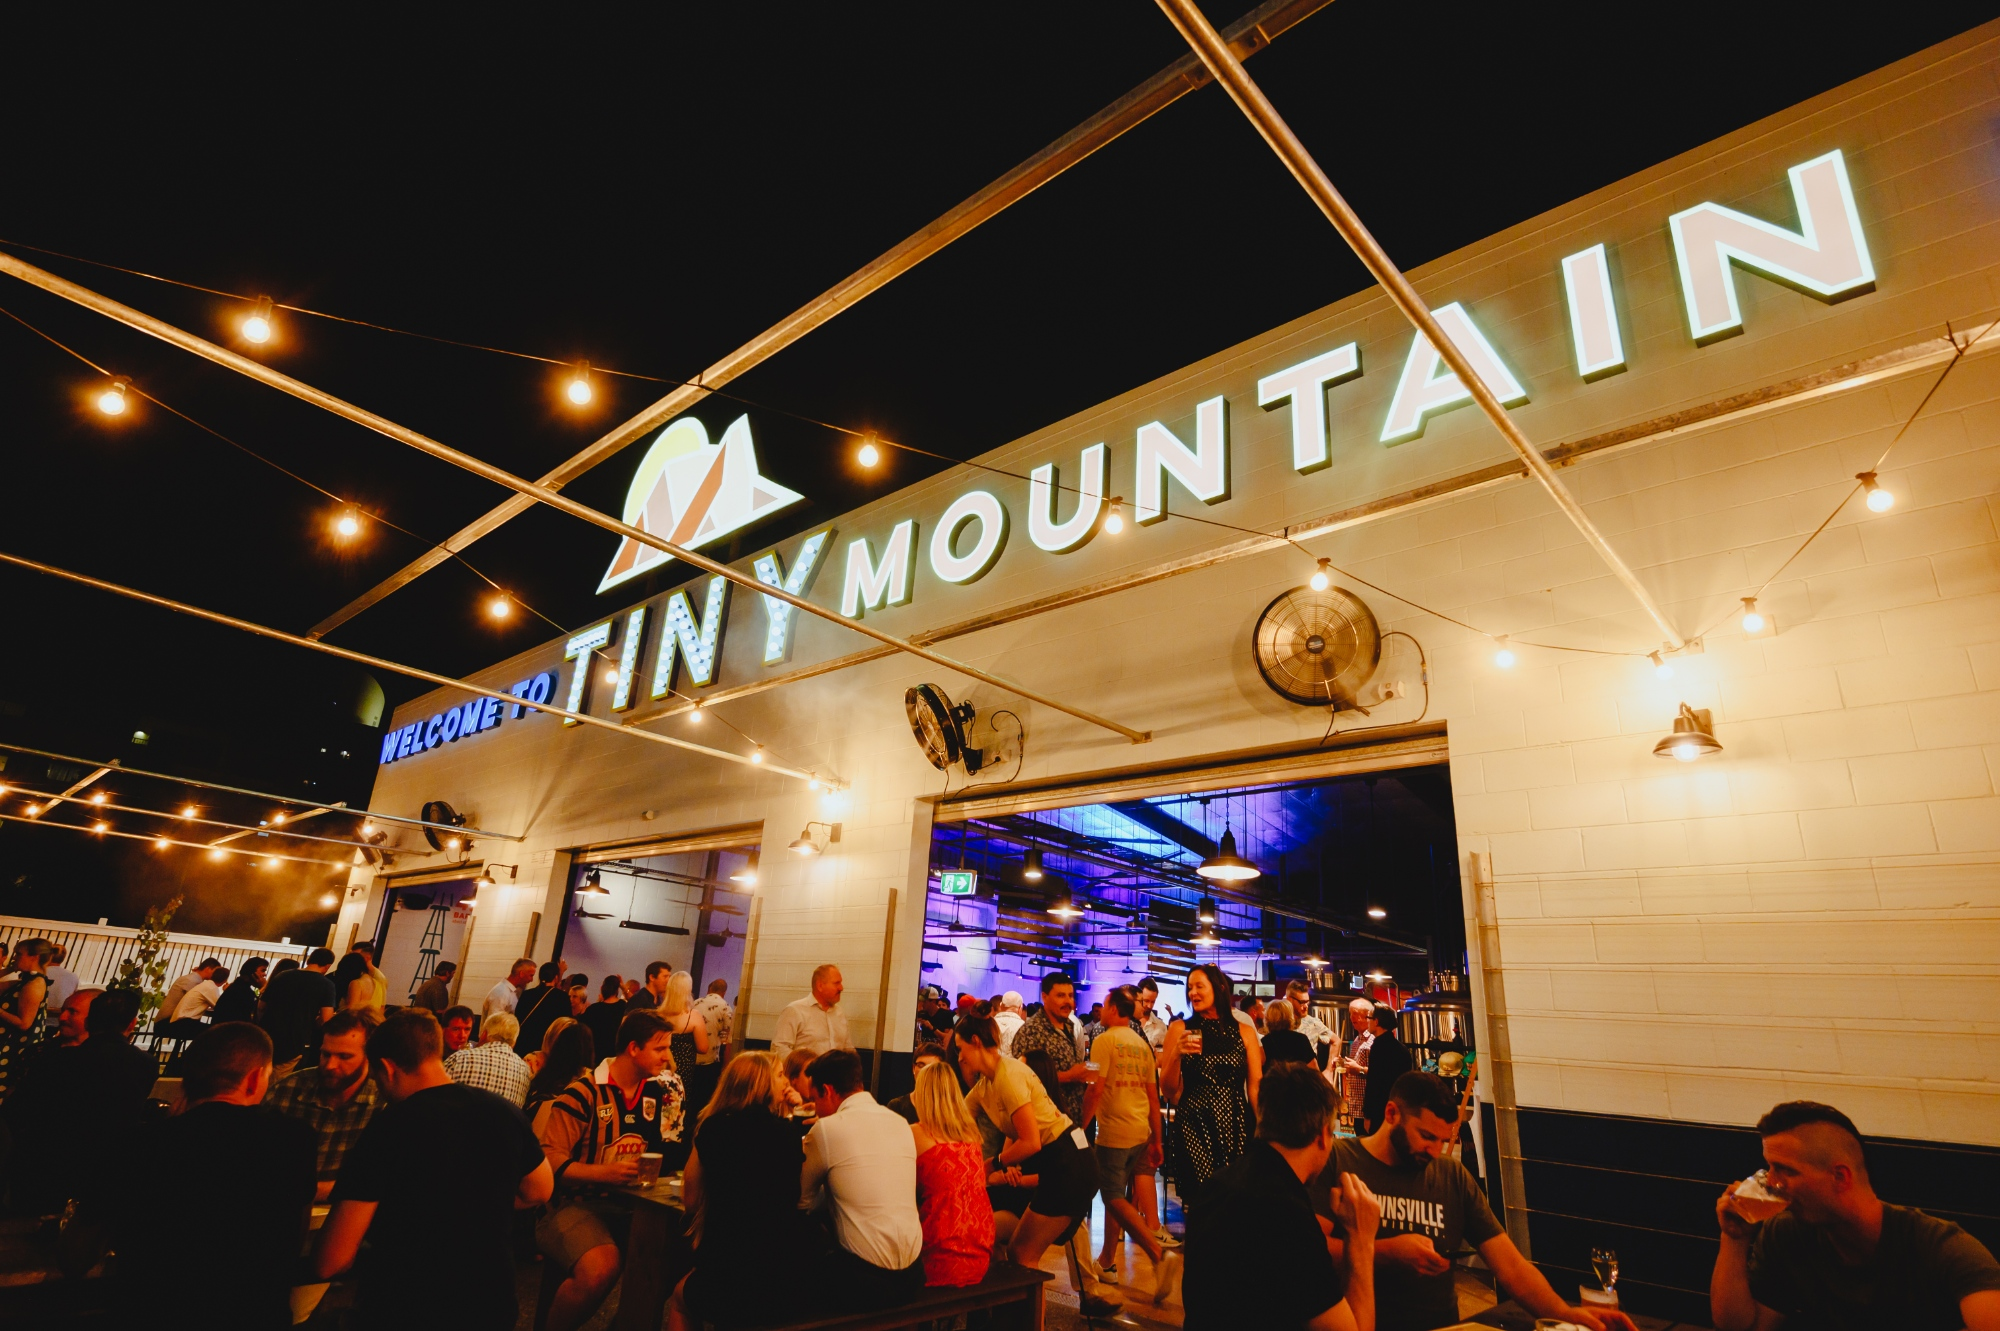 Lion Brewery (Tiny Mountain), Palmer St Townsville